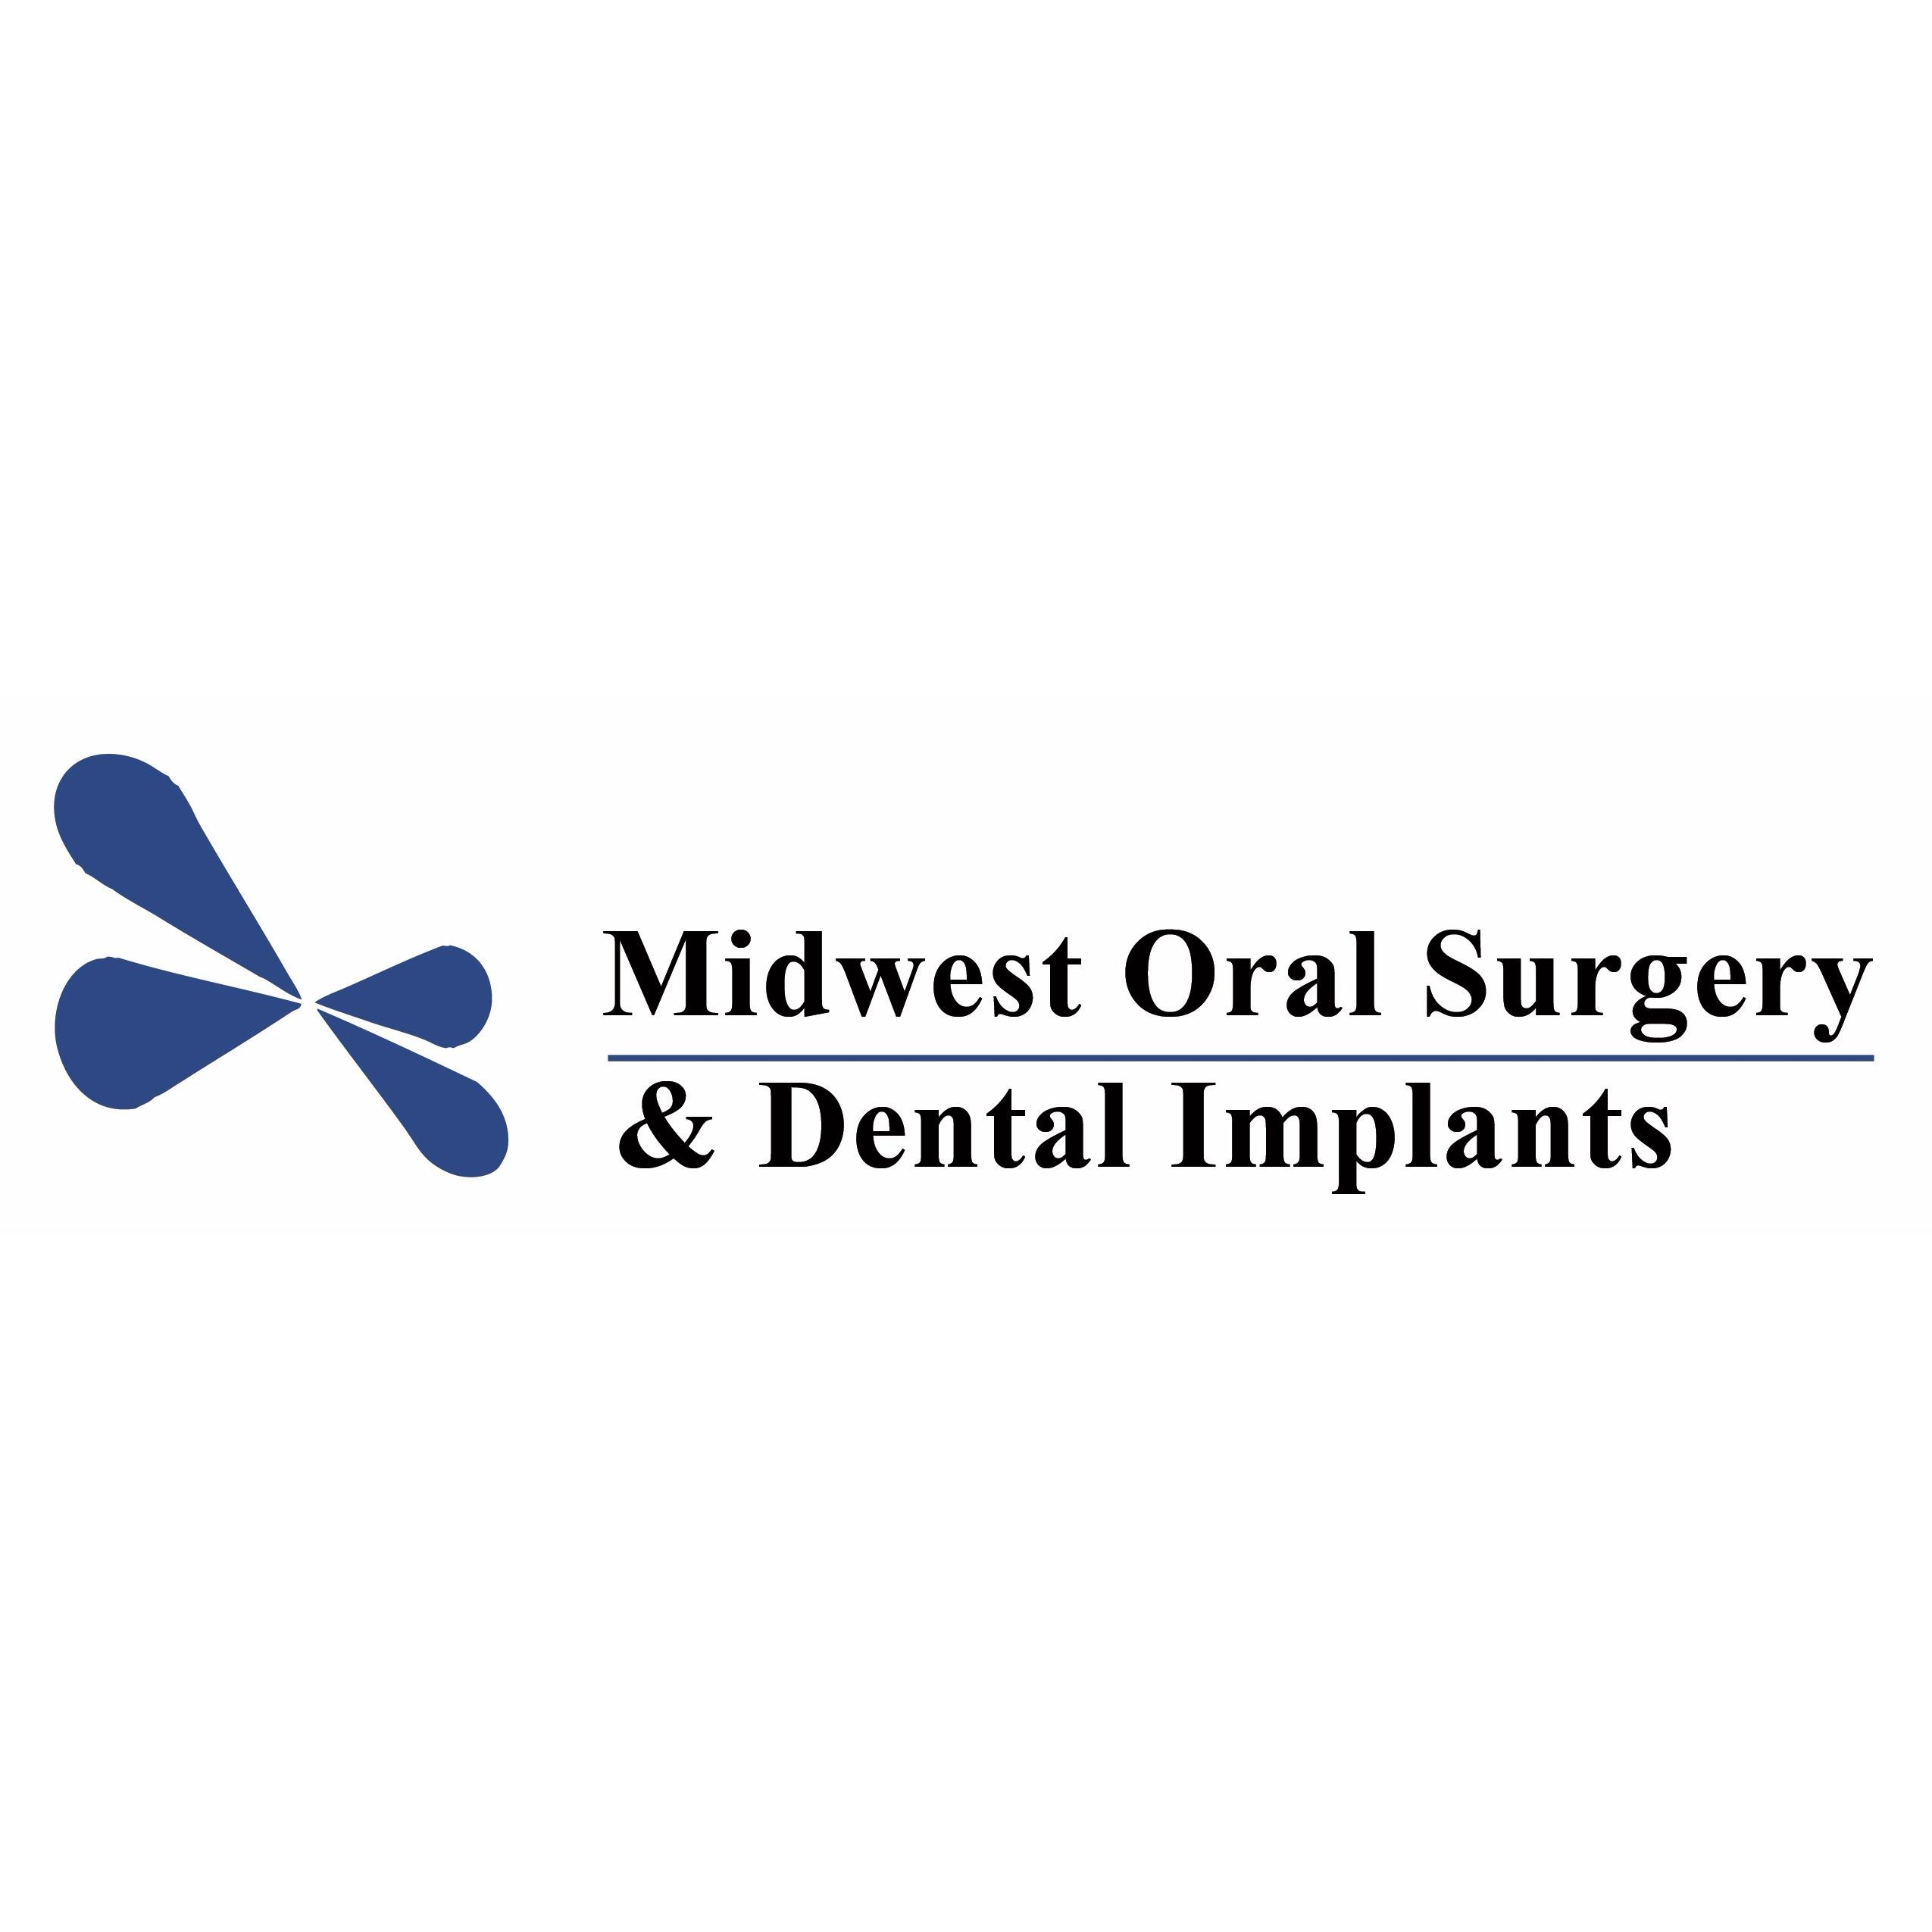 Midwest Oral Surgery & Dental Implants